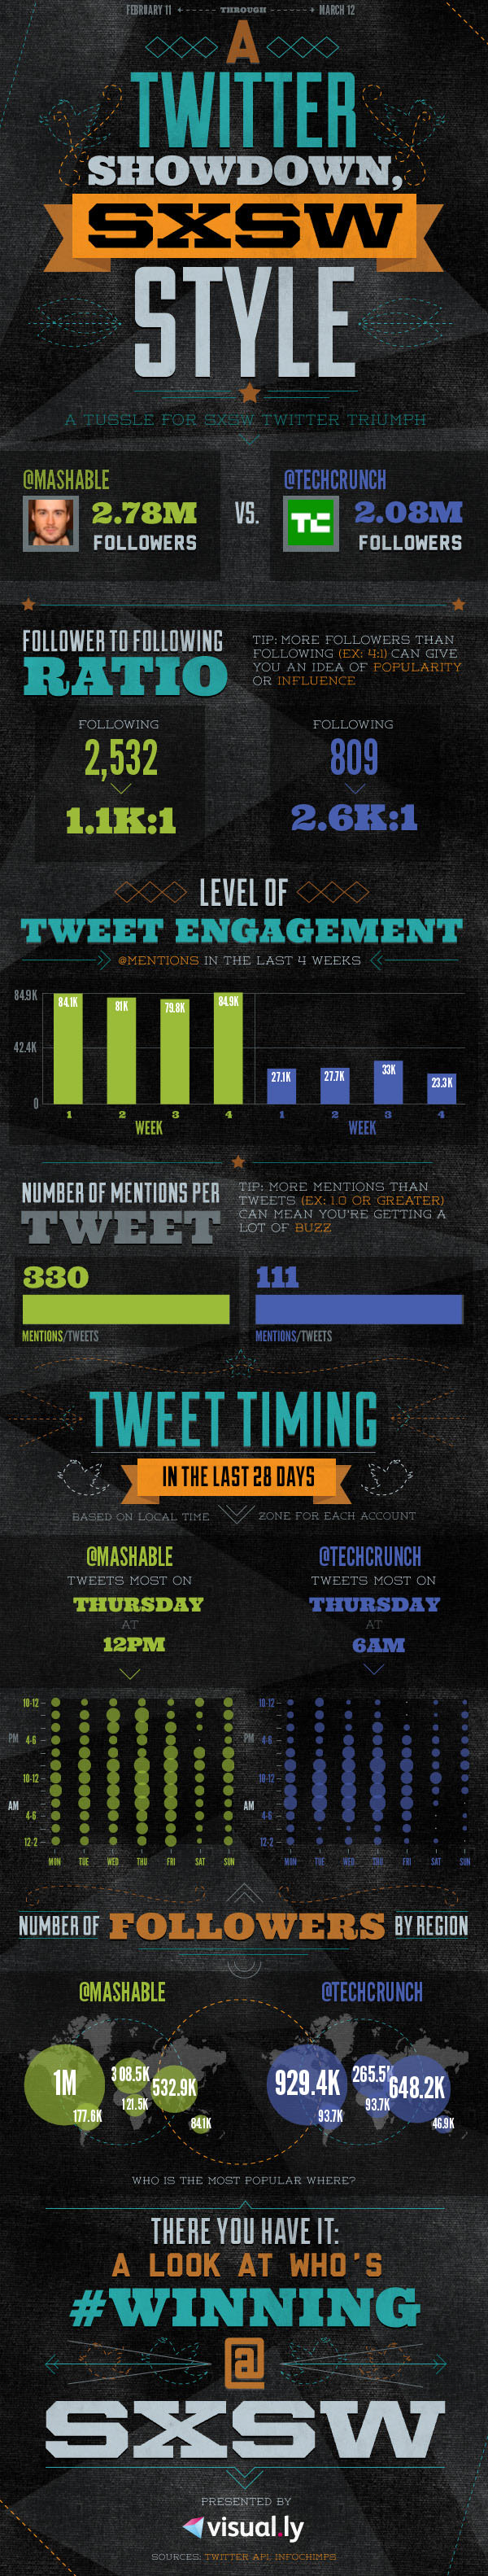 twitter-showdown-mashable-techcrunch